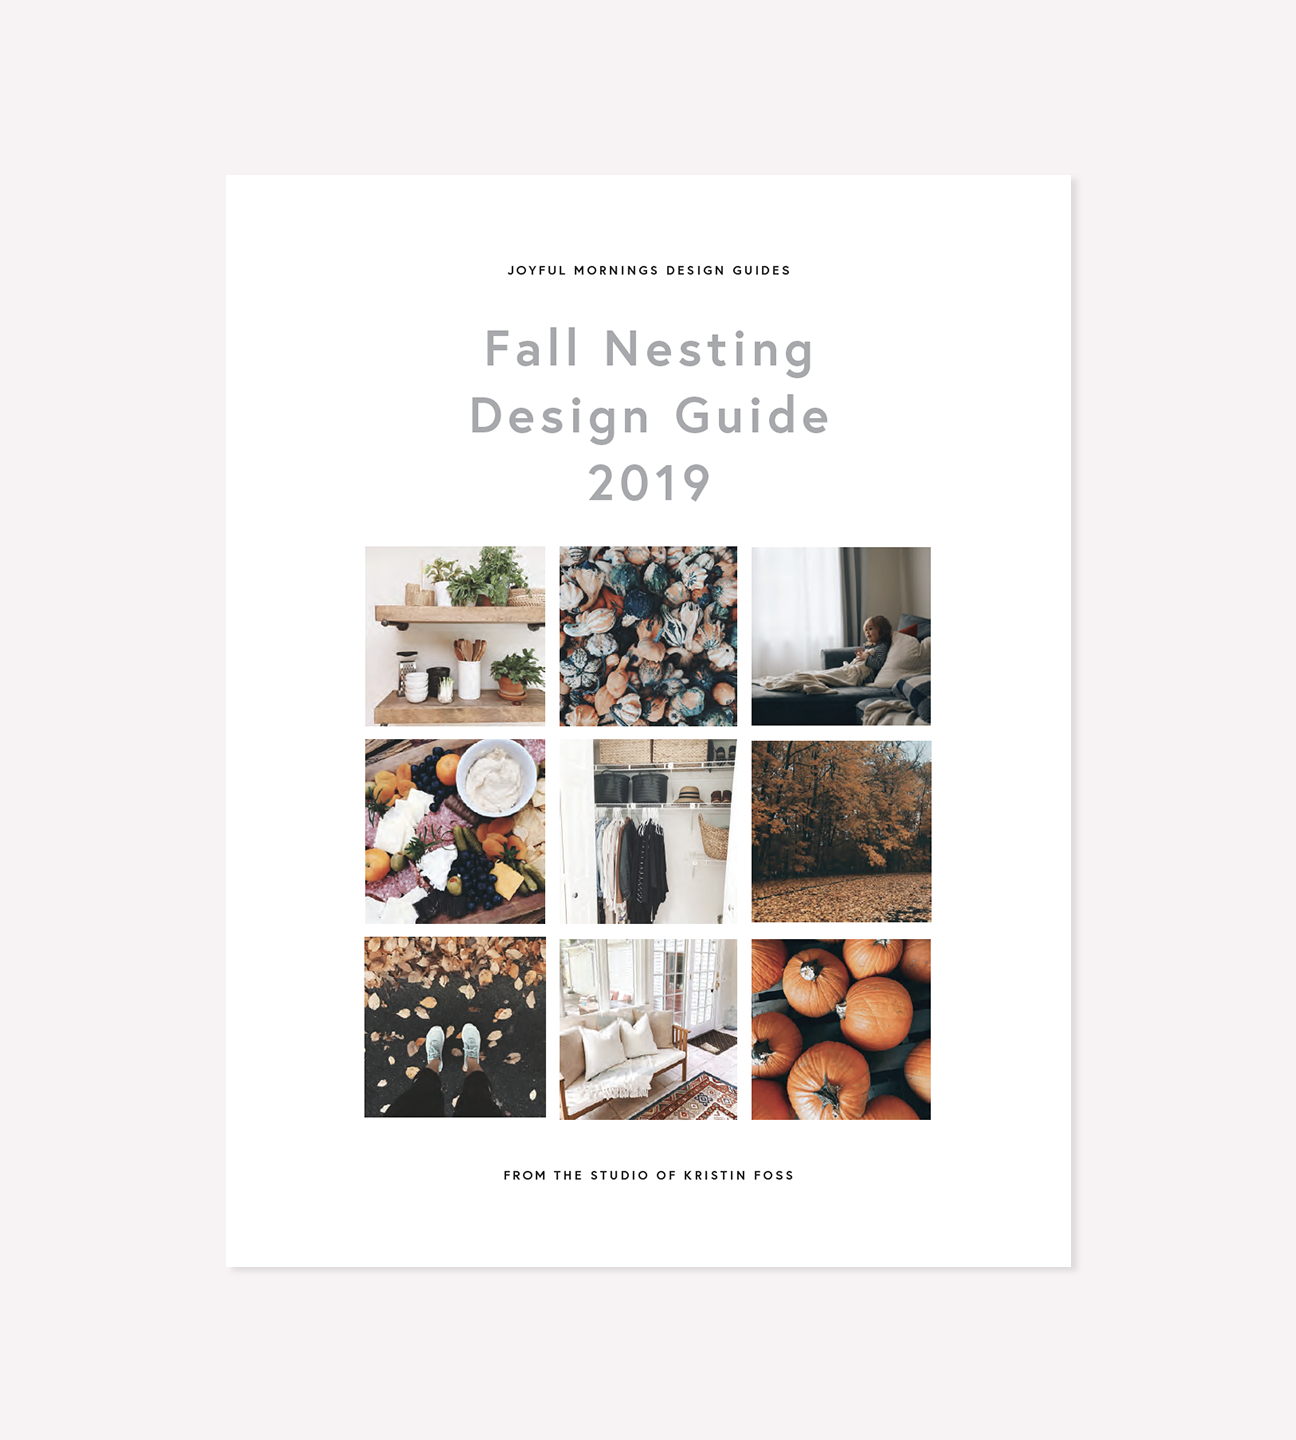 The Fall Nesting Guide - The Fall Nesting Design Guide is a comprehensive manual to get you jump started into your fall nesting.What's included:A guide to my favorite fall color palettes + textures and how I use color and texture to create a cohesive designA vision board page + design worksheet to help you create your own color palette and texture list for your fall home designThe #fallnestingchallenge planner pagesFour bonus prints to get started on creating a cozy fall nest